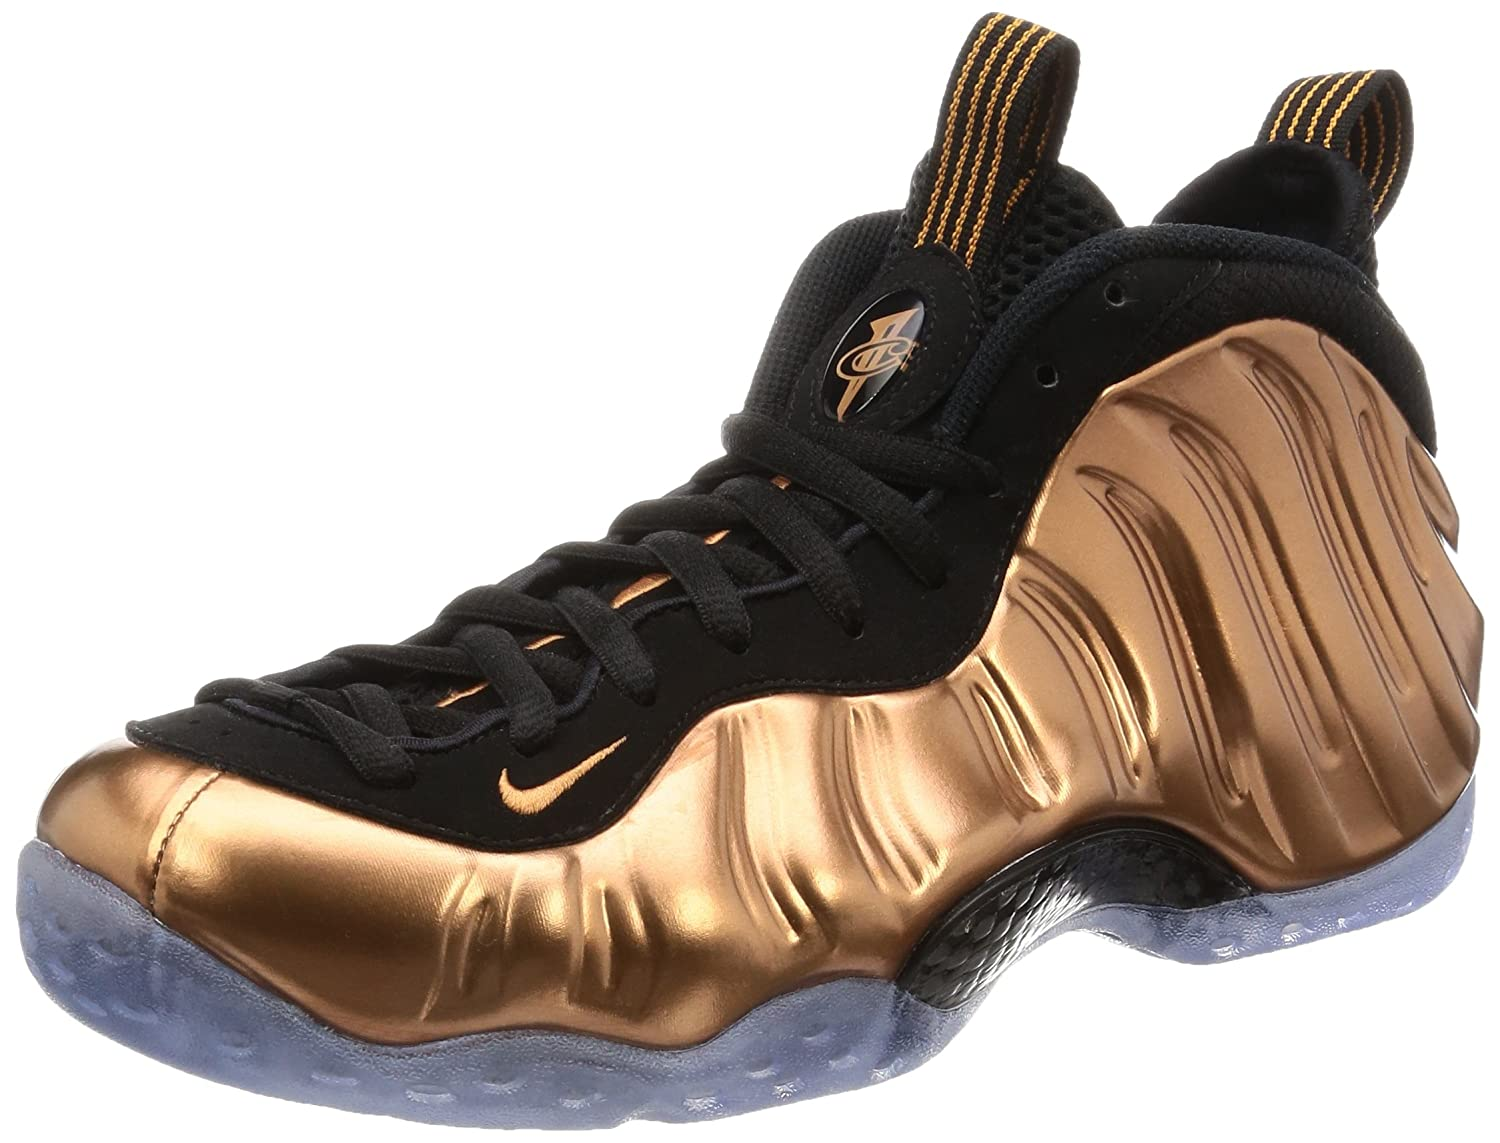 9b21937cd39 Nike Men s Air Foamposite One Basketball Shoe